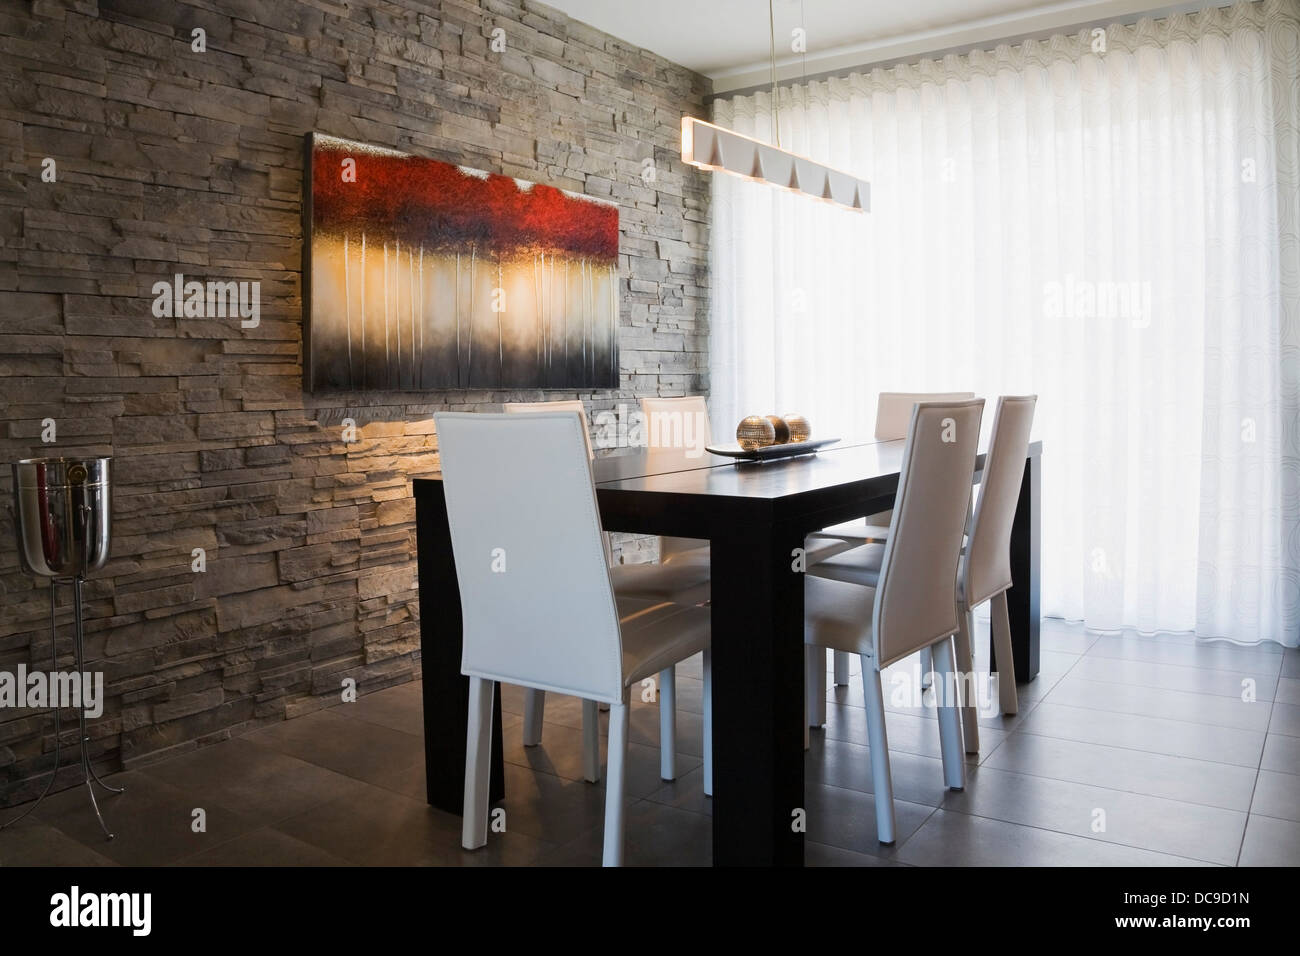 Dining room inside a modern residential home - Stock Image